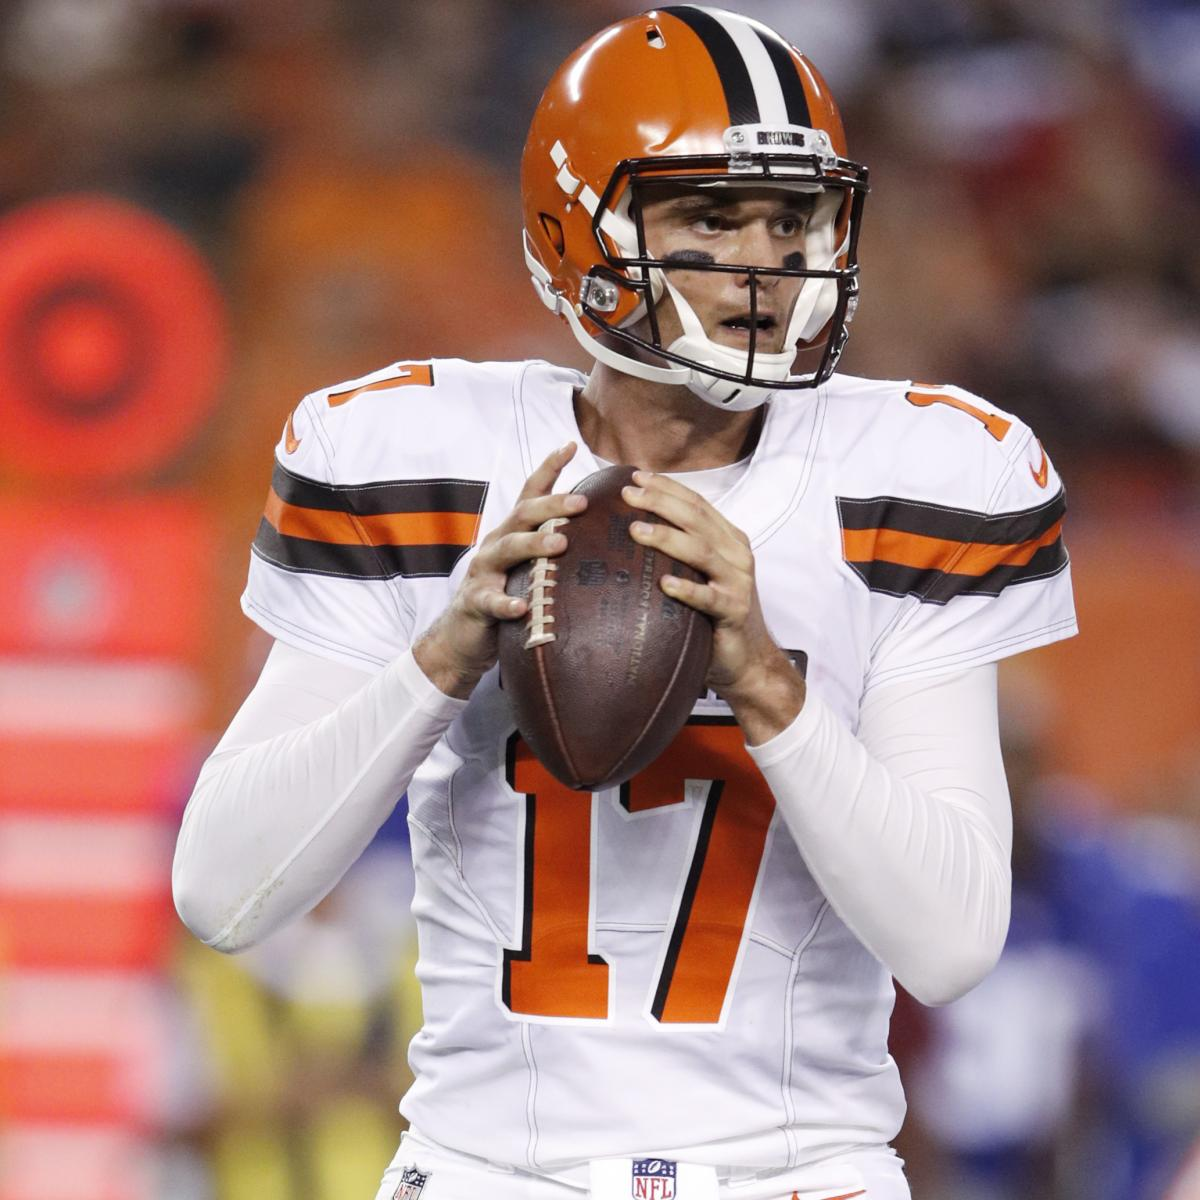 Brock Osweiler Rumors: Broncos To 'Zero In' On QB Once